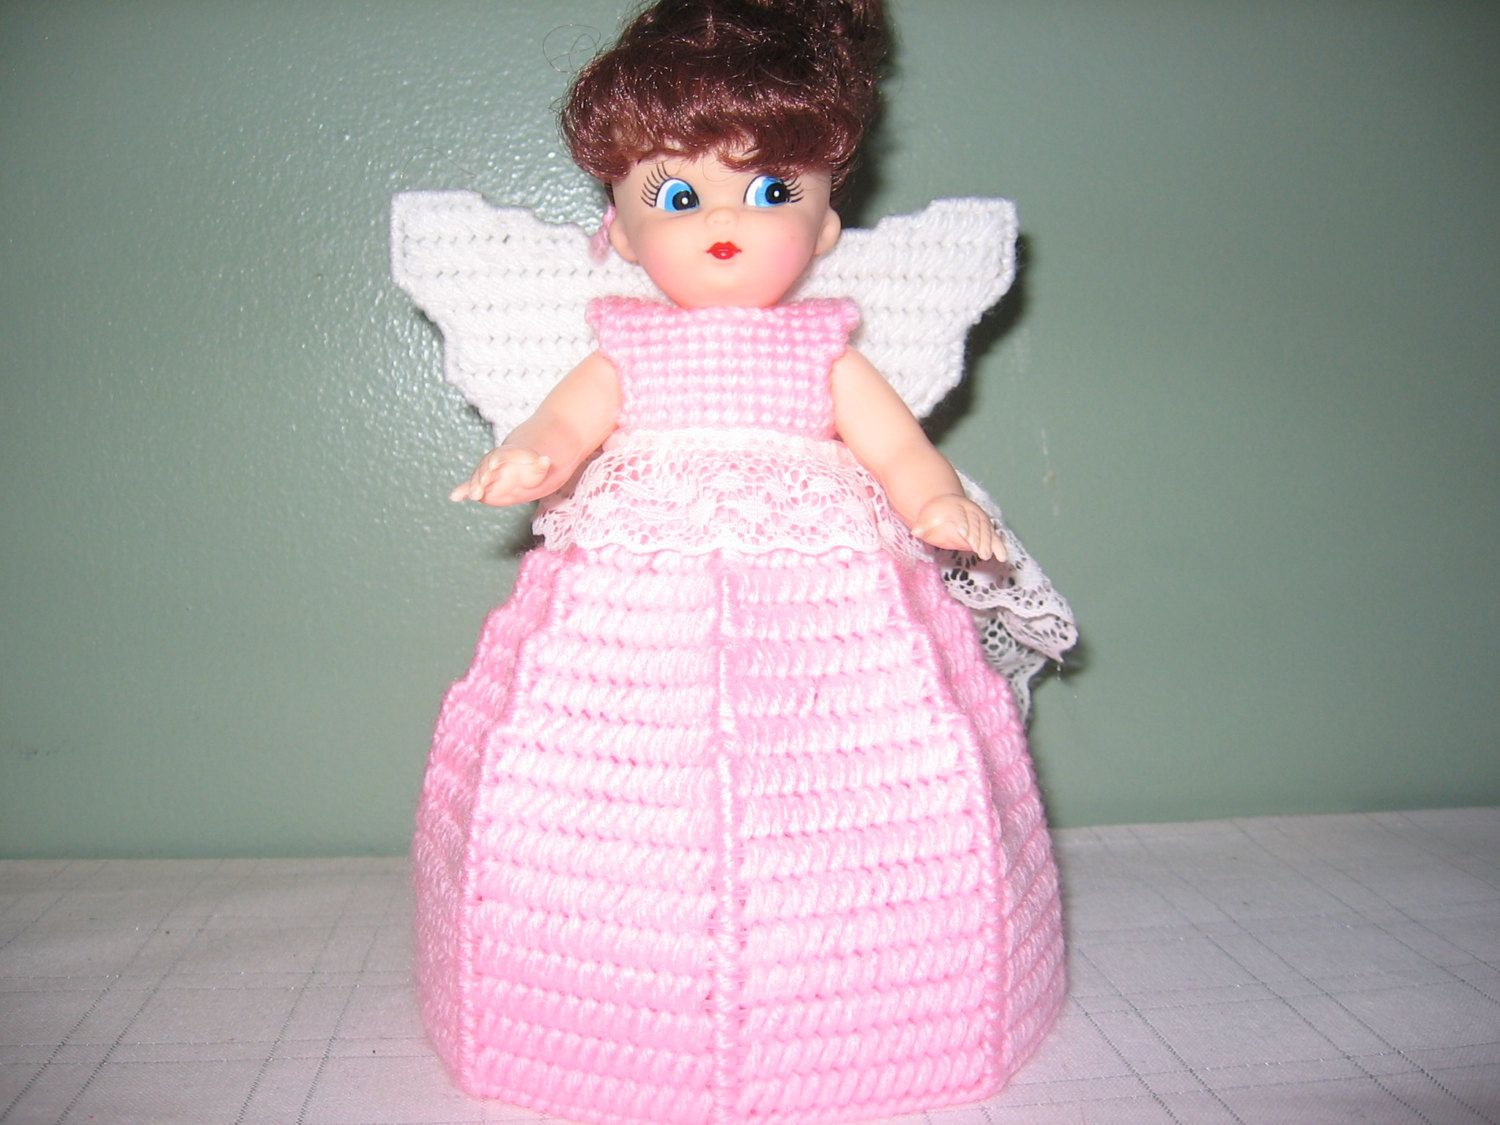 Light Pink Angel Air Freshner or Angel Tree Topper Collectible Doll by CreationsbyAMJ on Etsy #airfreshnerdolls